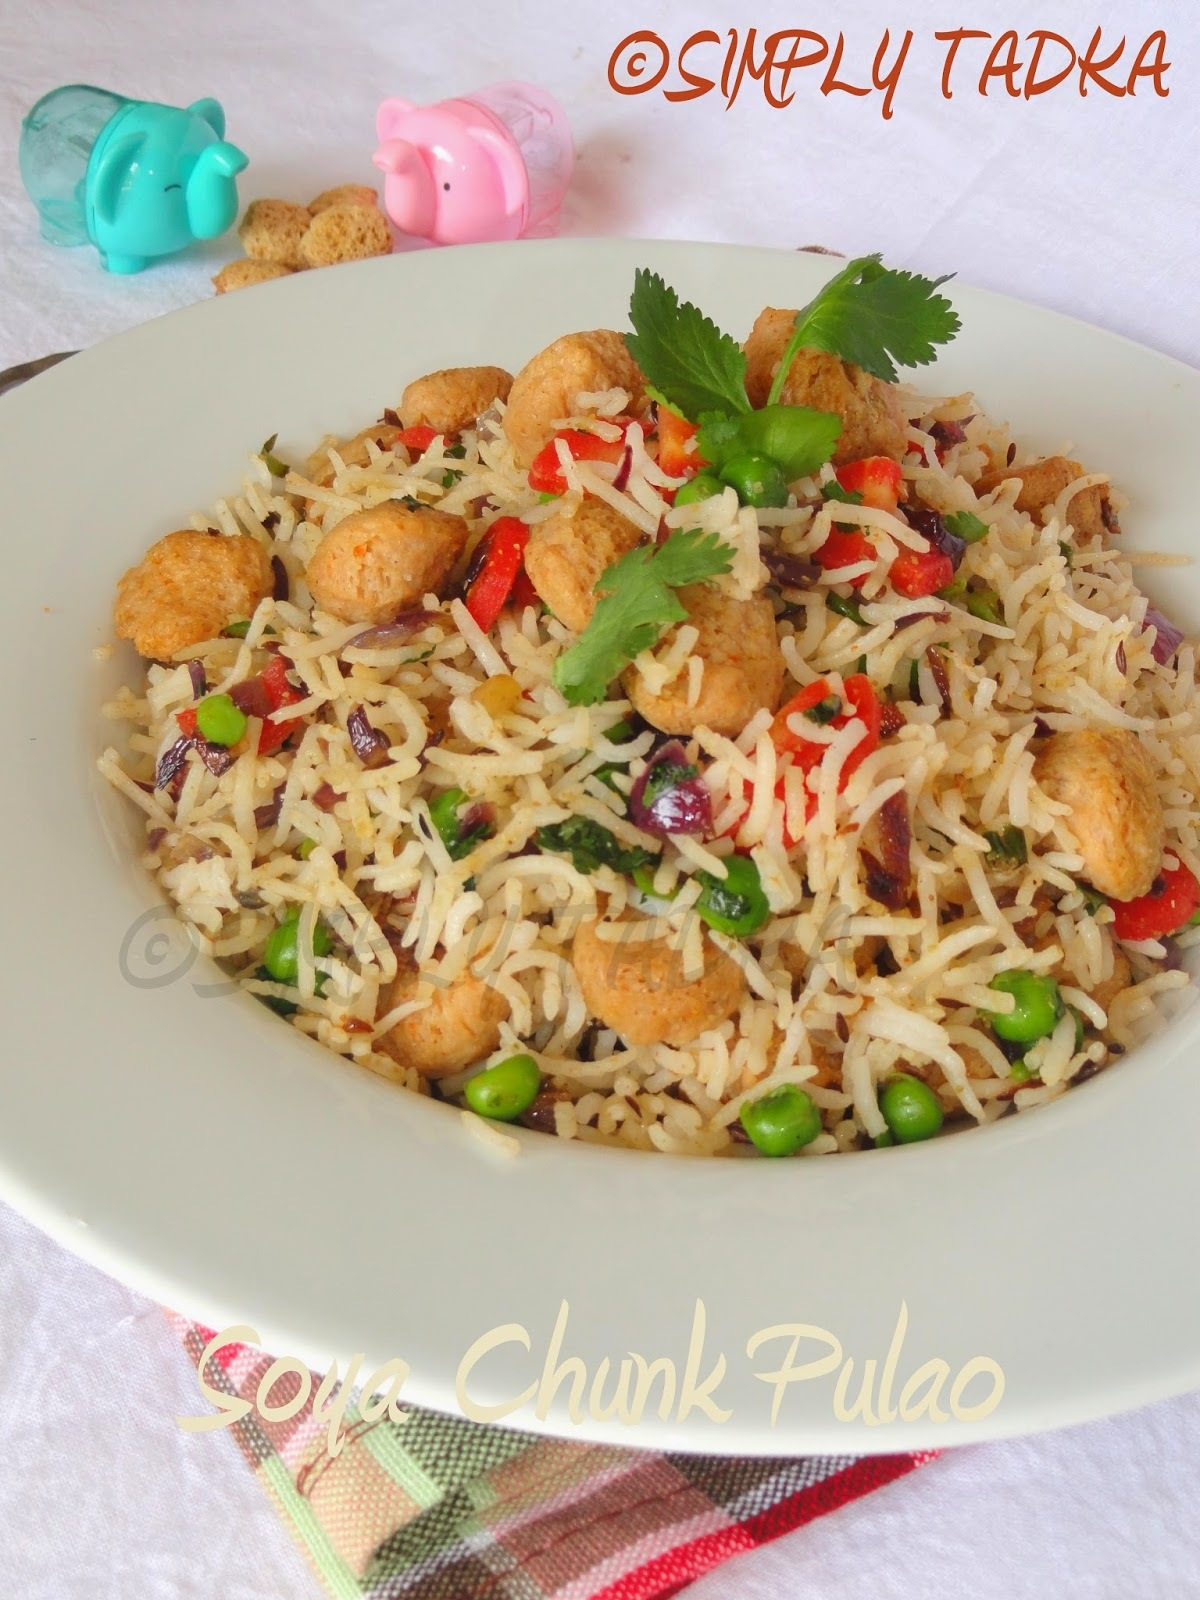 Soya Chunk Pulao| Rice Recipes